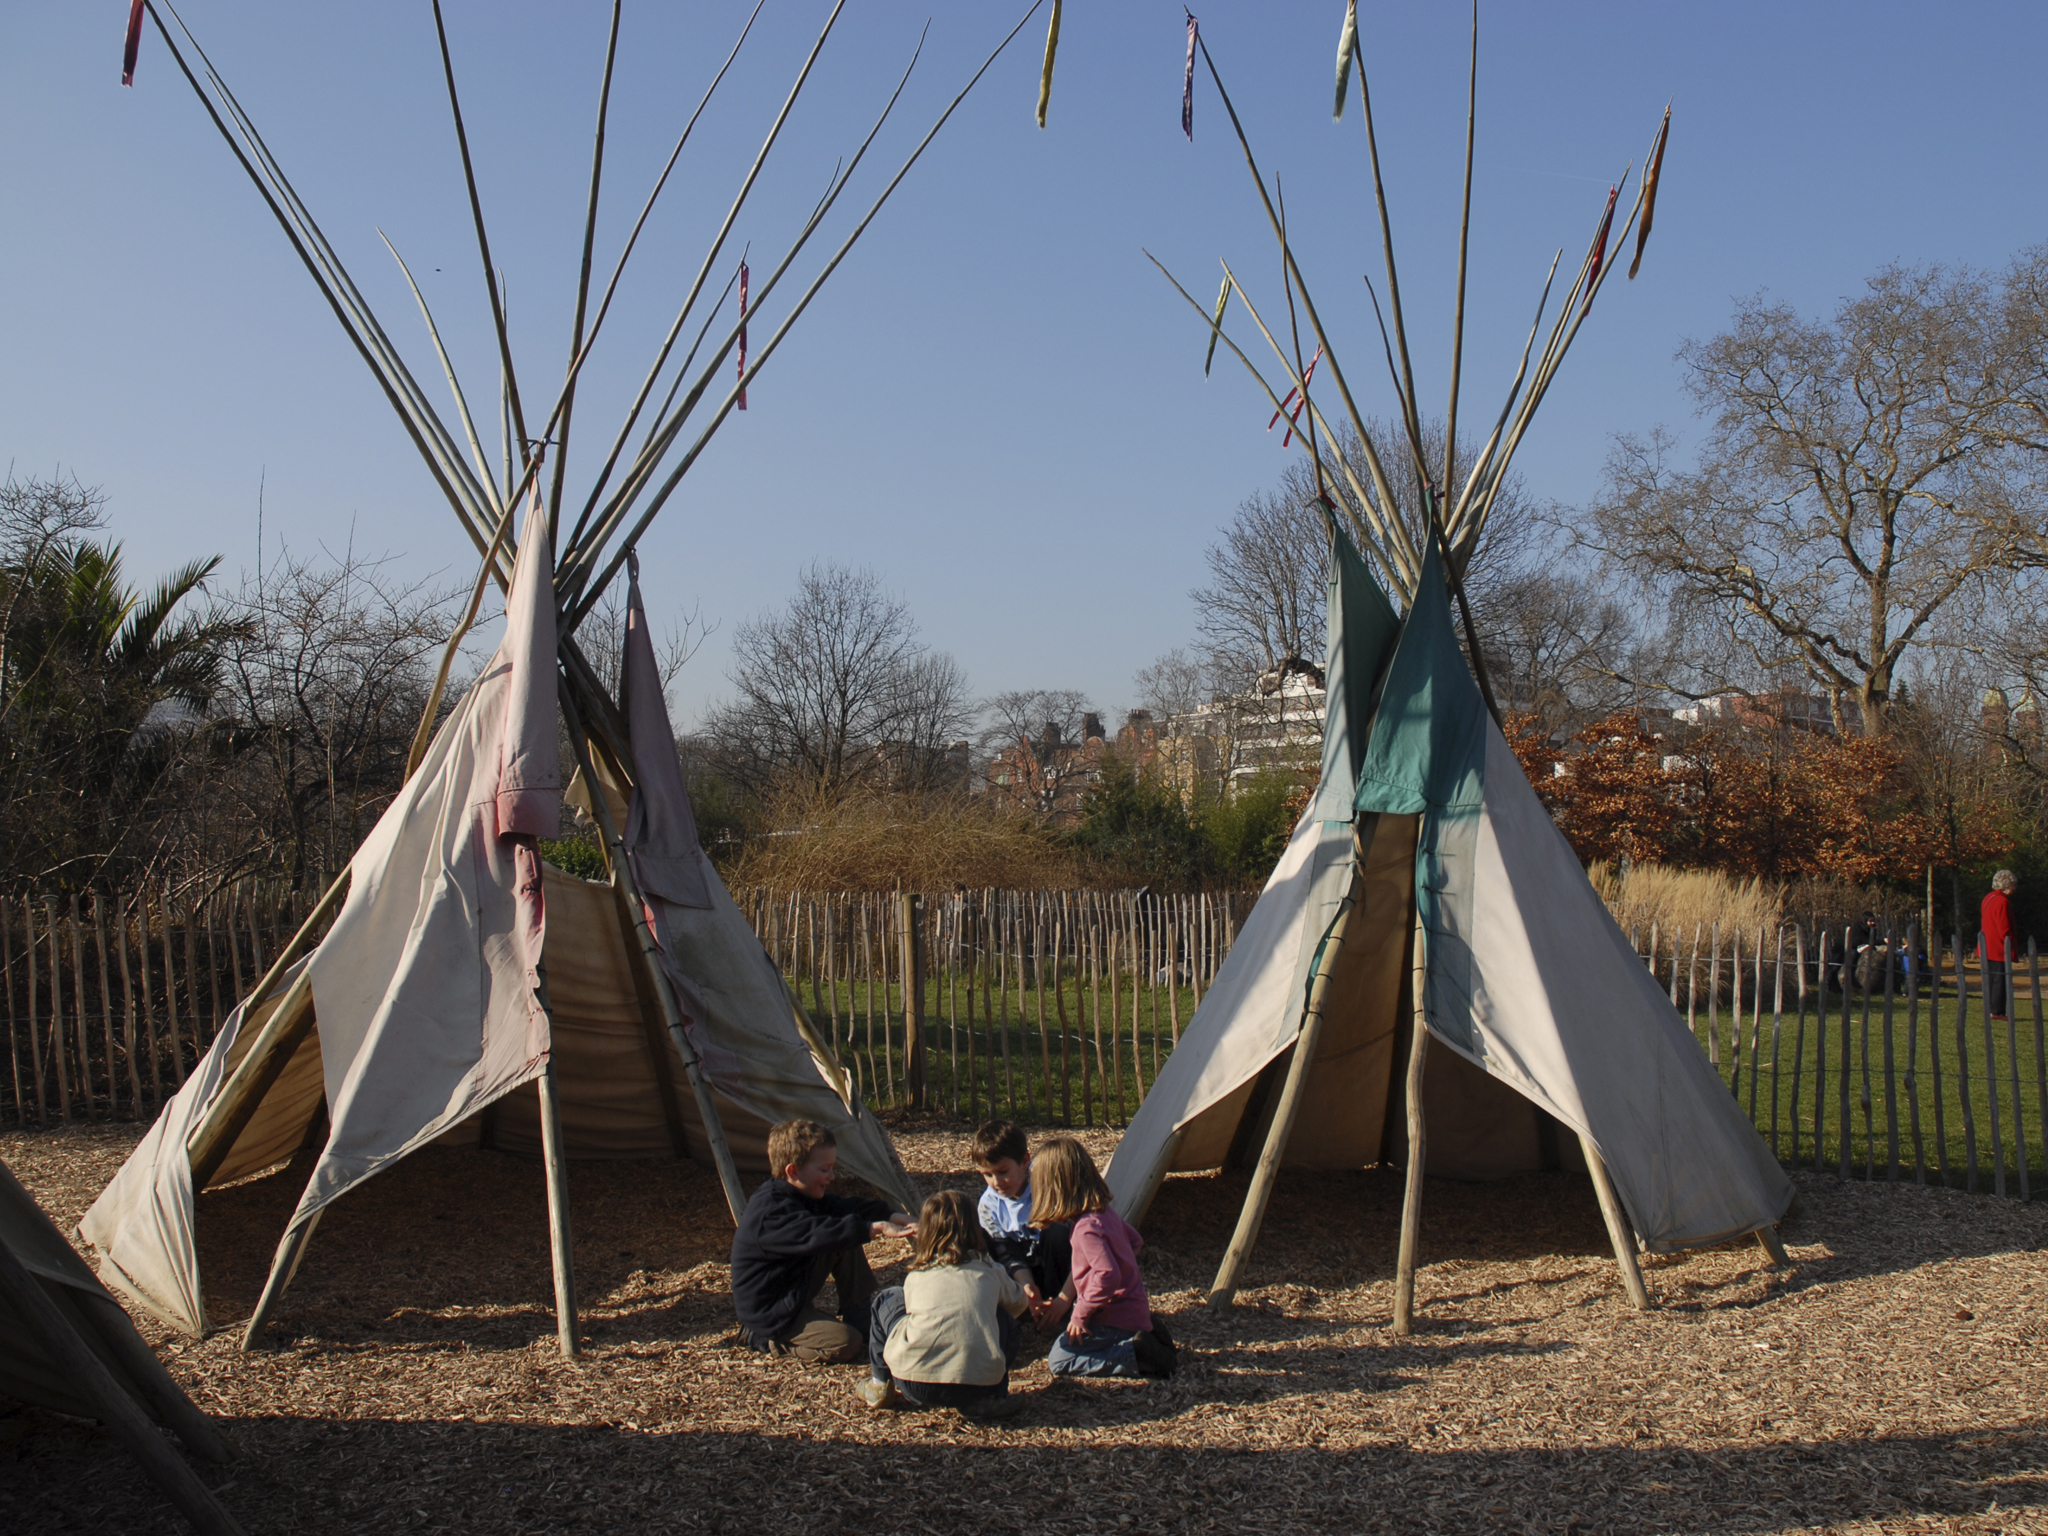 101 things to do in London with kids, Princess Diana Memorial Playground, wigwams